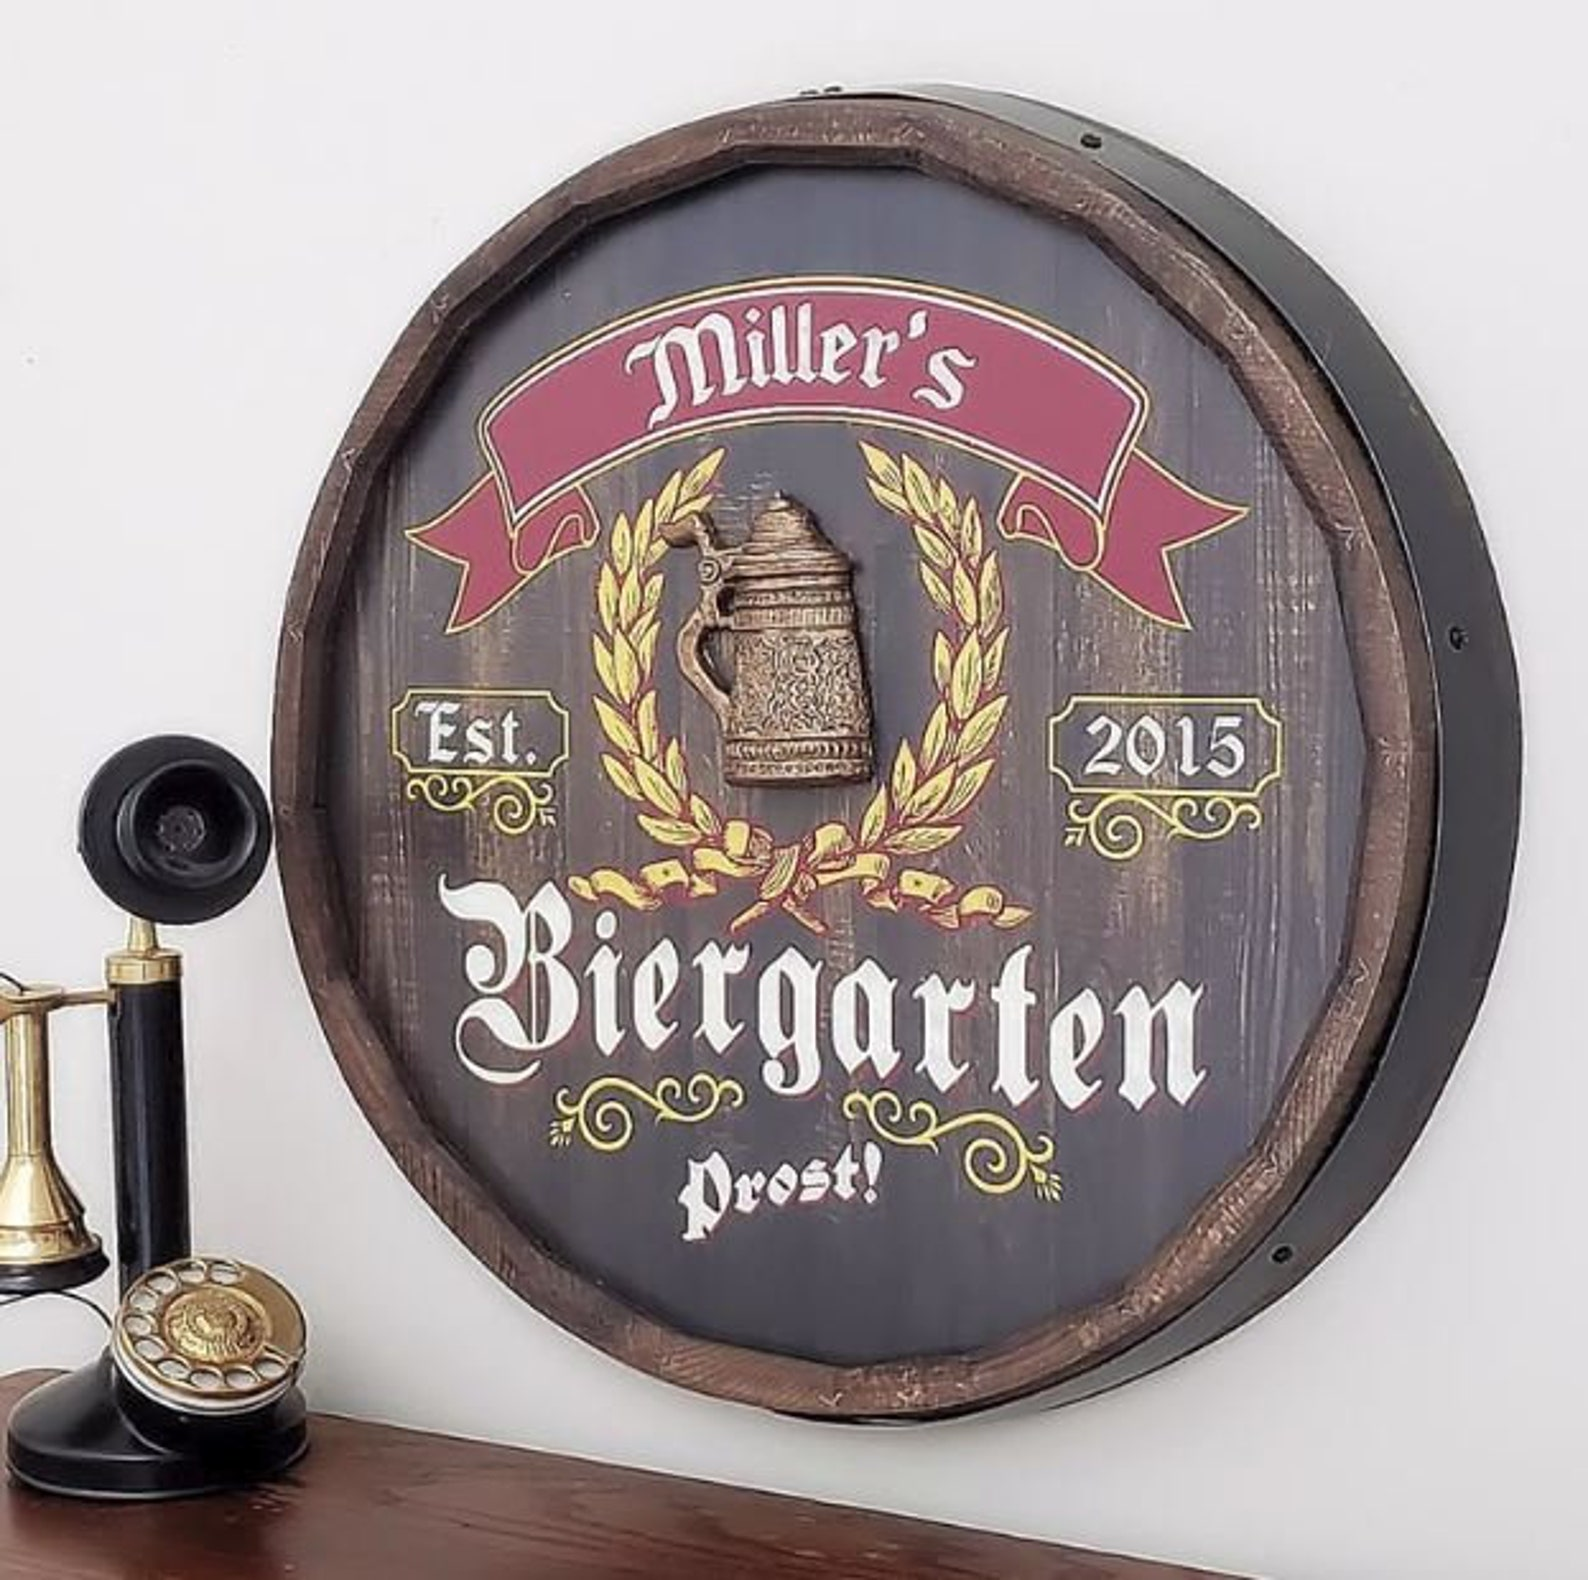 Biergarten Personalized Barrel End Bar Sign >>> Need it on or before Christmas Eve? Order by DECEMBER 12